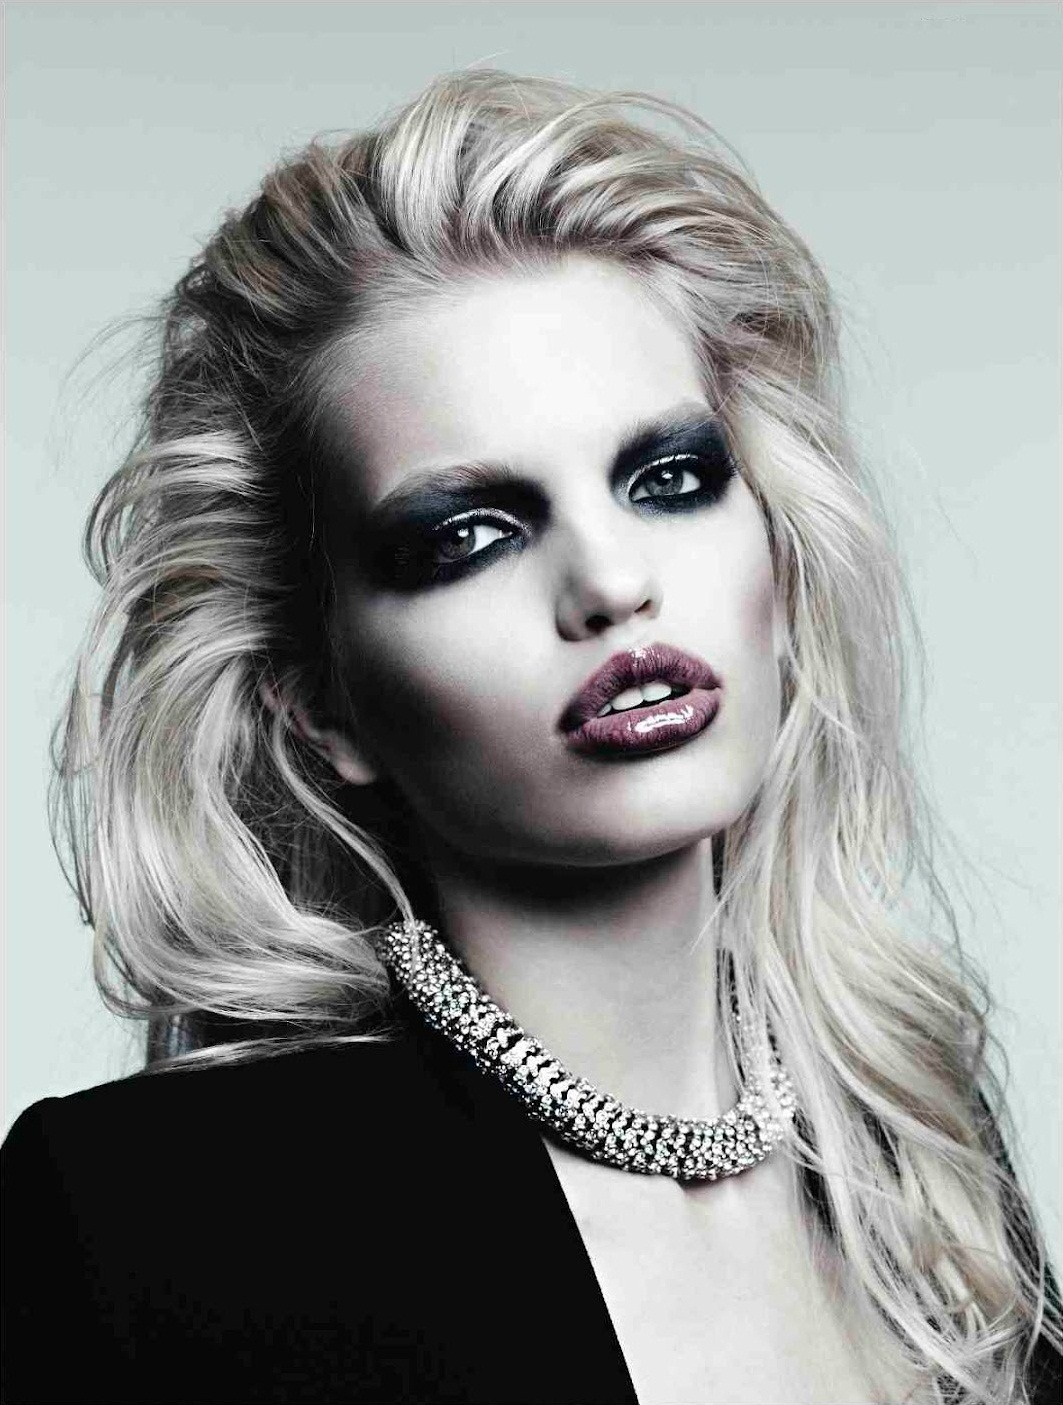 framenoir:  Daphne Groeneveld by Hedi Slimane for the April 2012 issue of Vogue Russia.